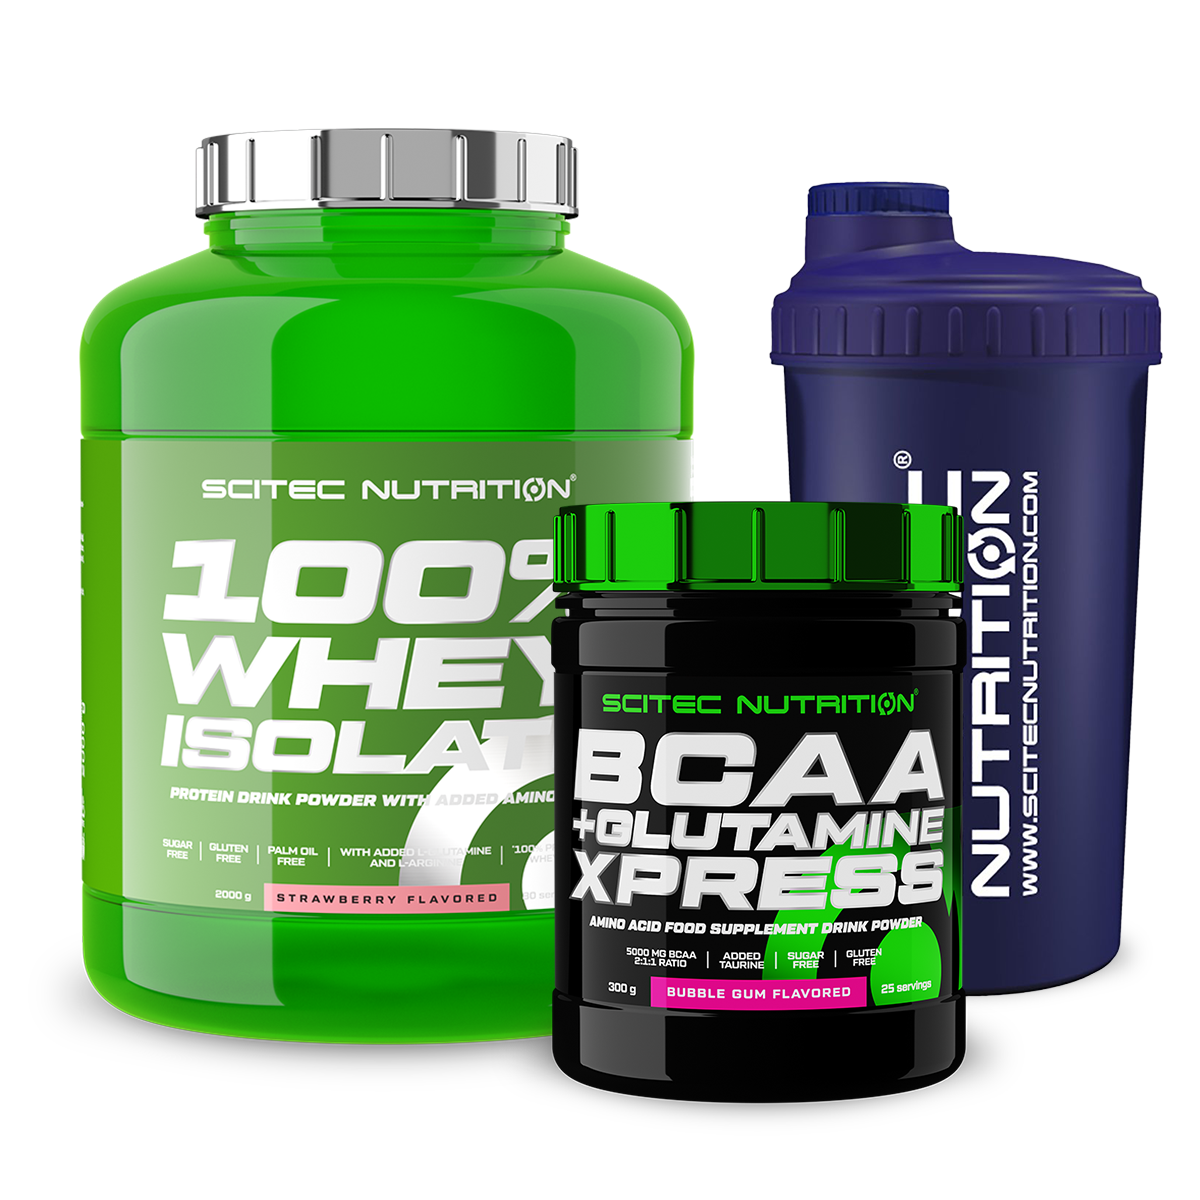 Scitec Nutrition 100% Whey Isolate + BCAA+Glutamine Xpress set